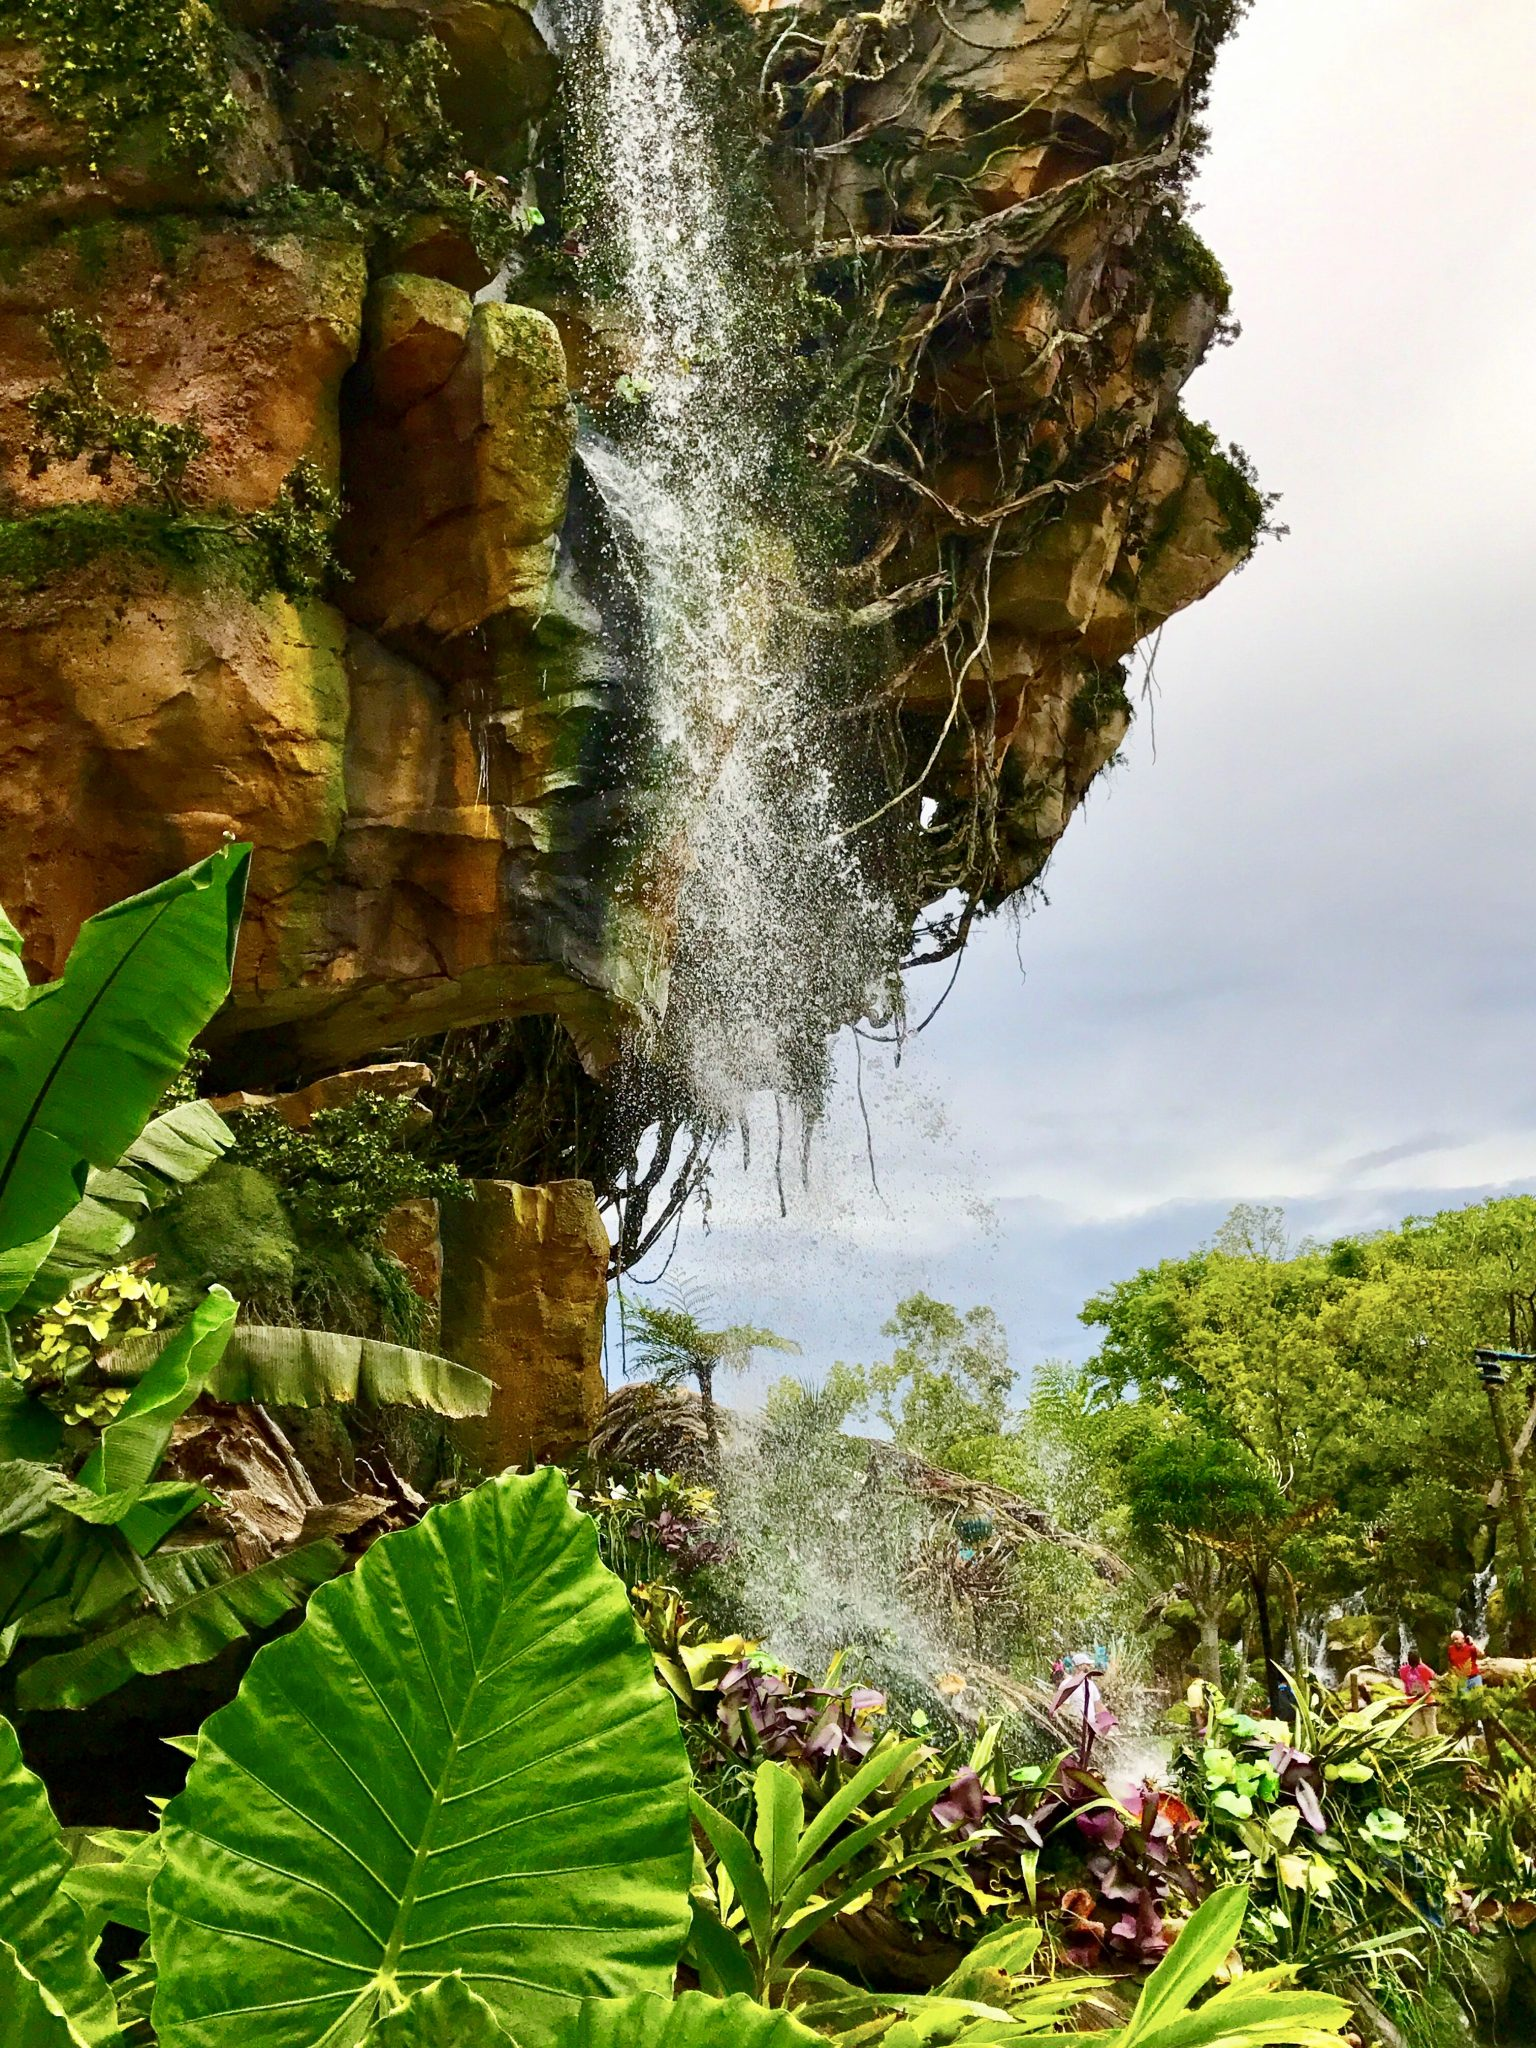 Pandora-The World Of Avatar Walt Disney World -